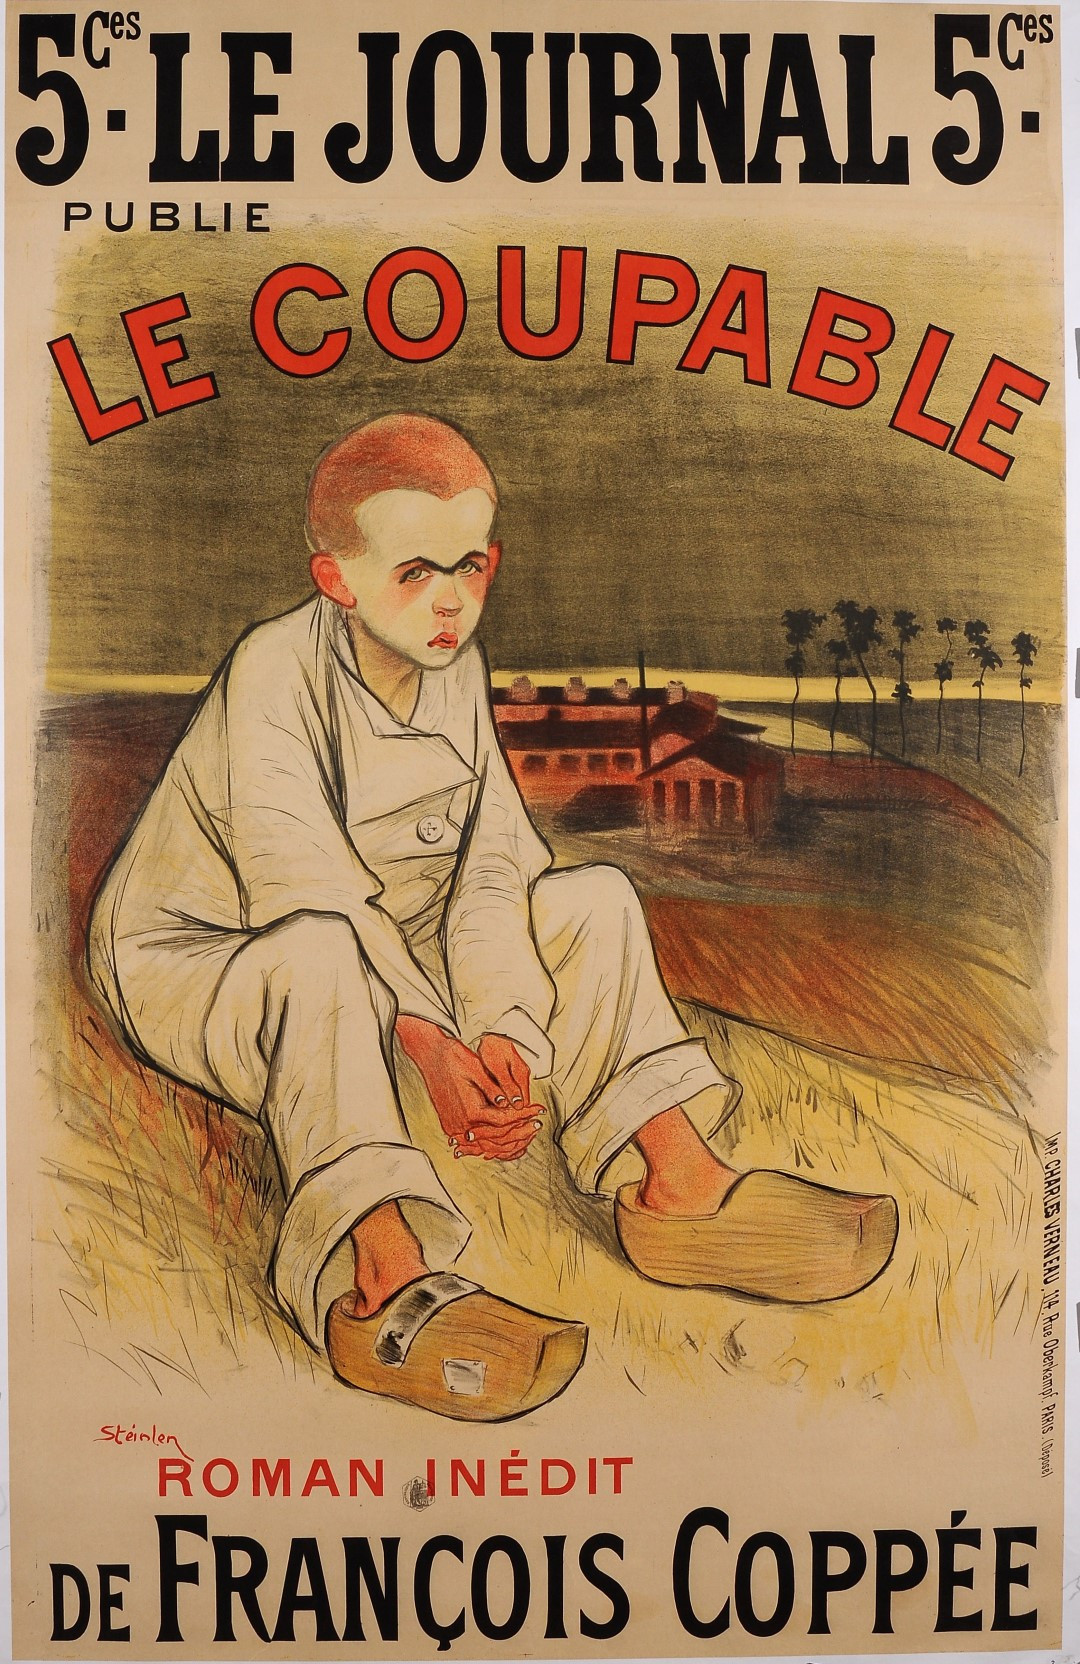 """Original Vintage French Poster for Coppee's """"Le Coupable"""" by Steinlen 1896"""